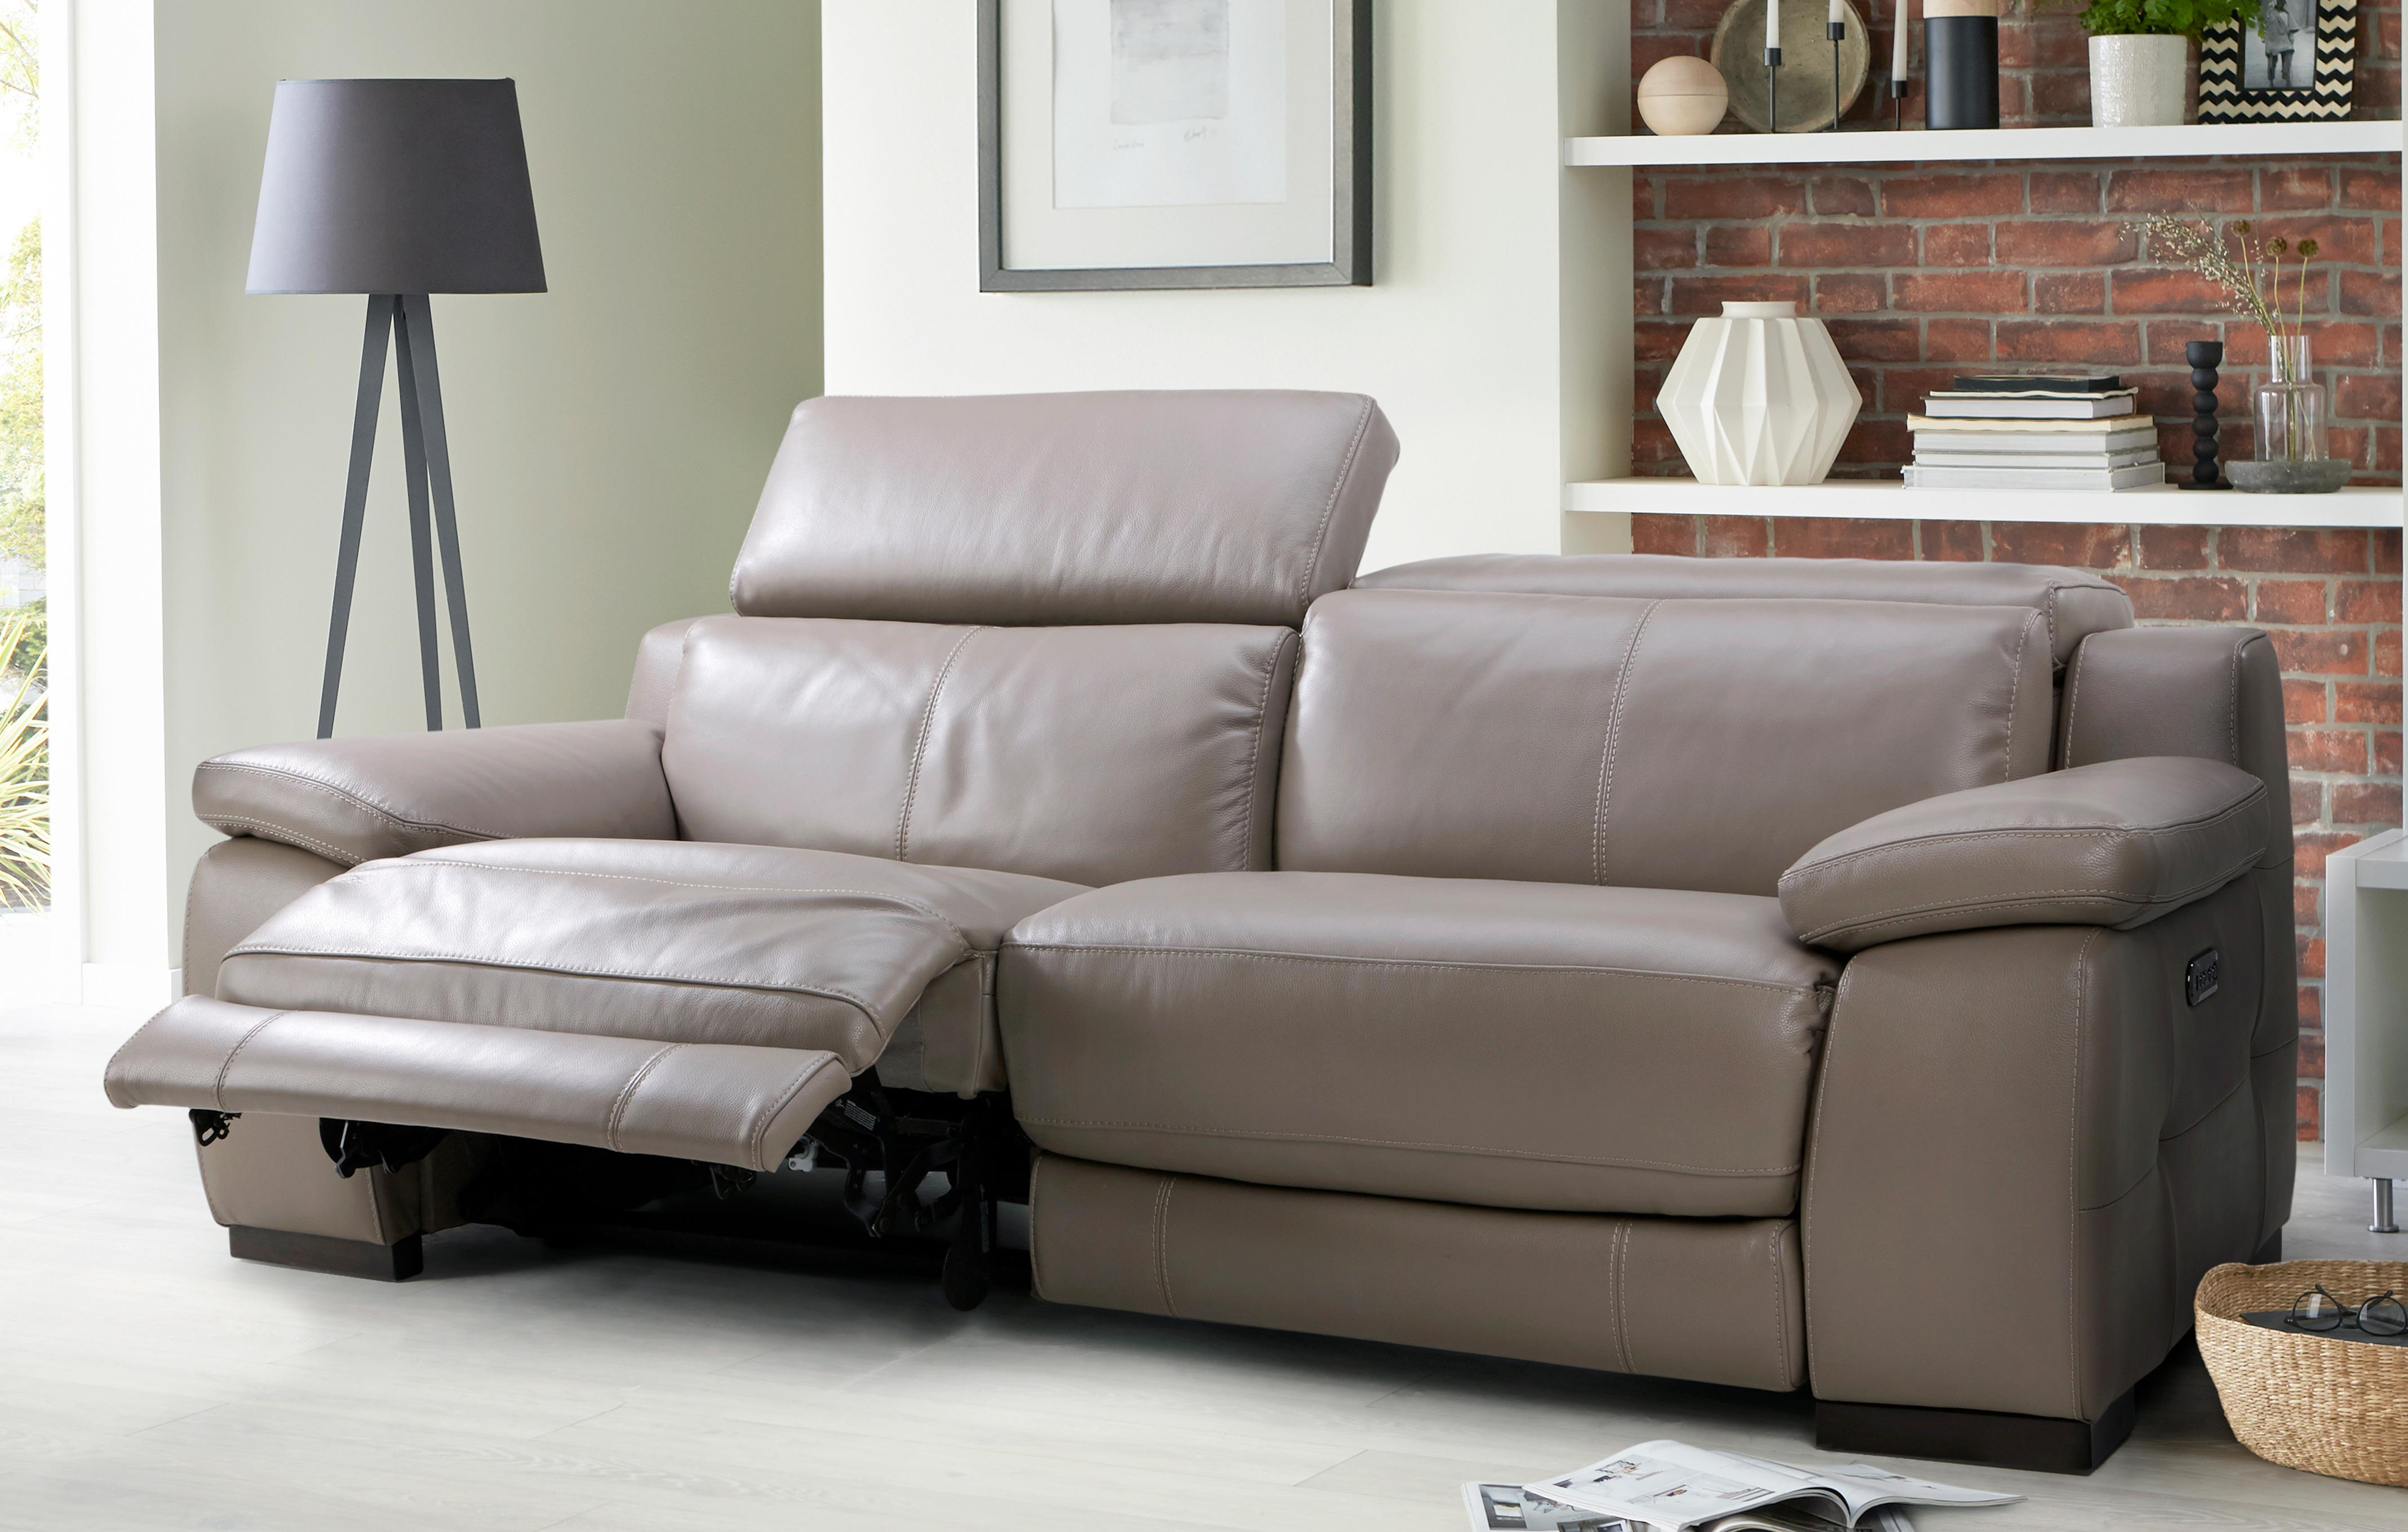 Leather Recliner Sofas In Classic Modern Styles DFS